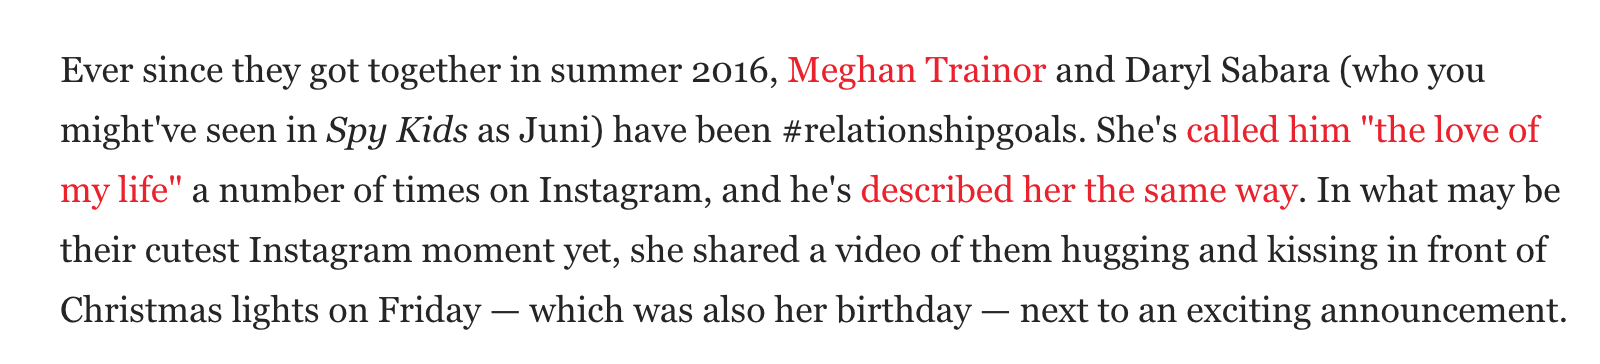 WHERE'S THE HYPER LINK ON HIS NAME FOR HIS WORK, TEEN VOGUE